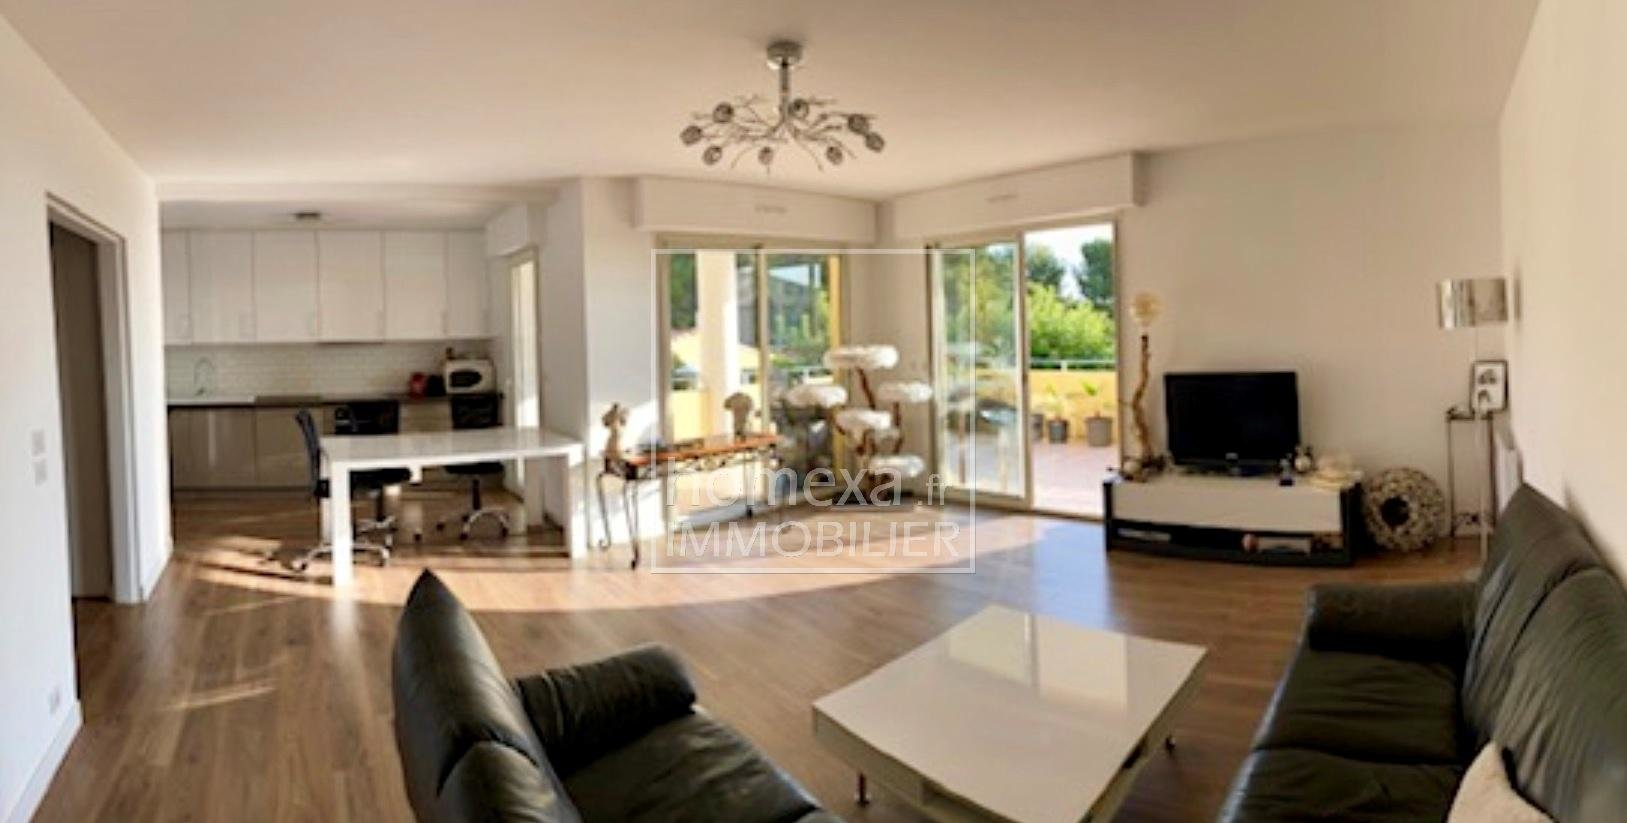 Apartment for sale in Biot Saint-Philippe Sophia-Antipolis